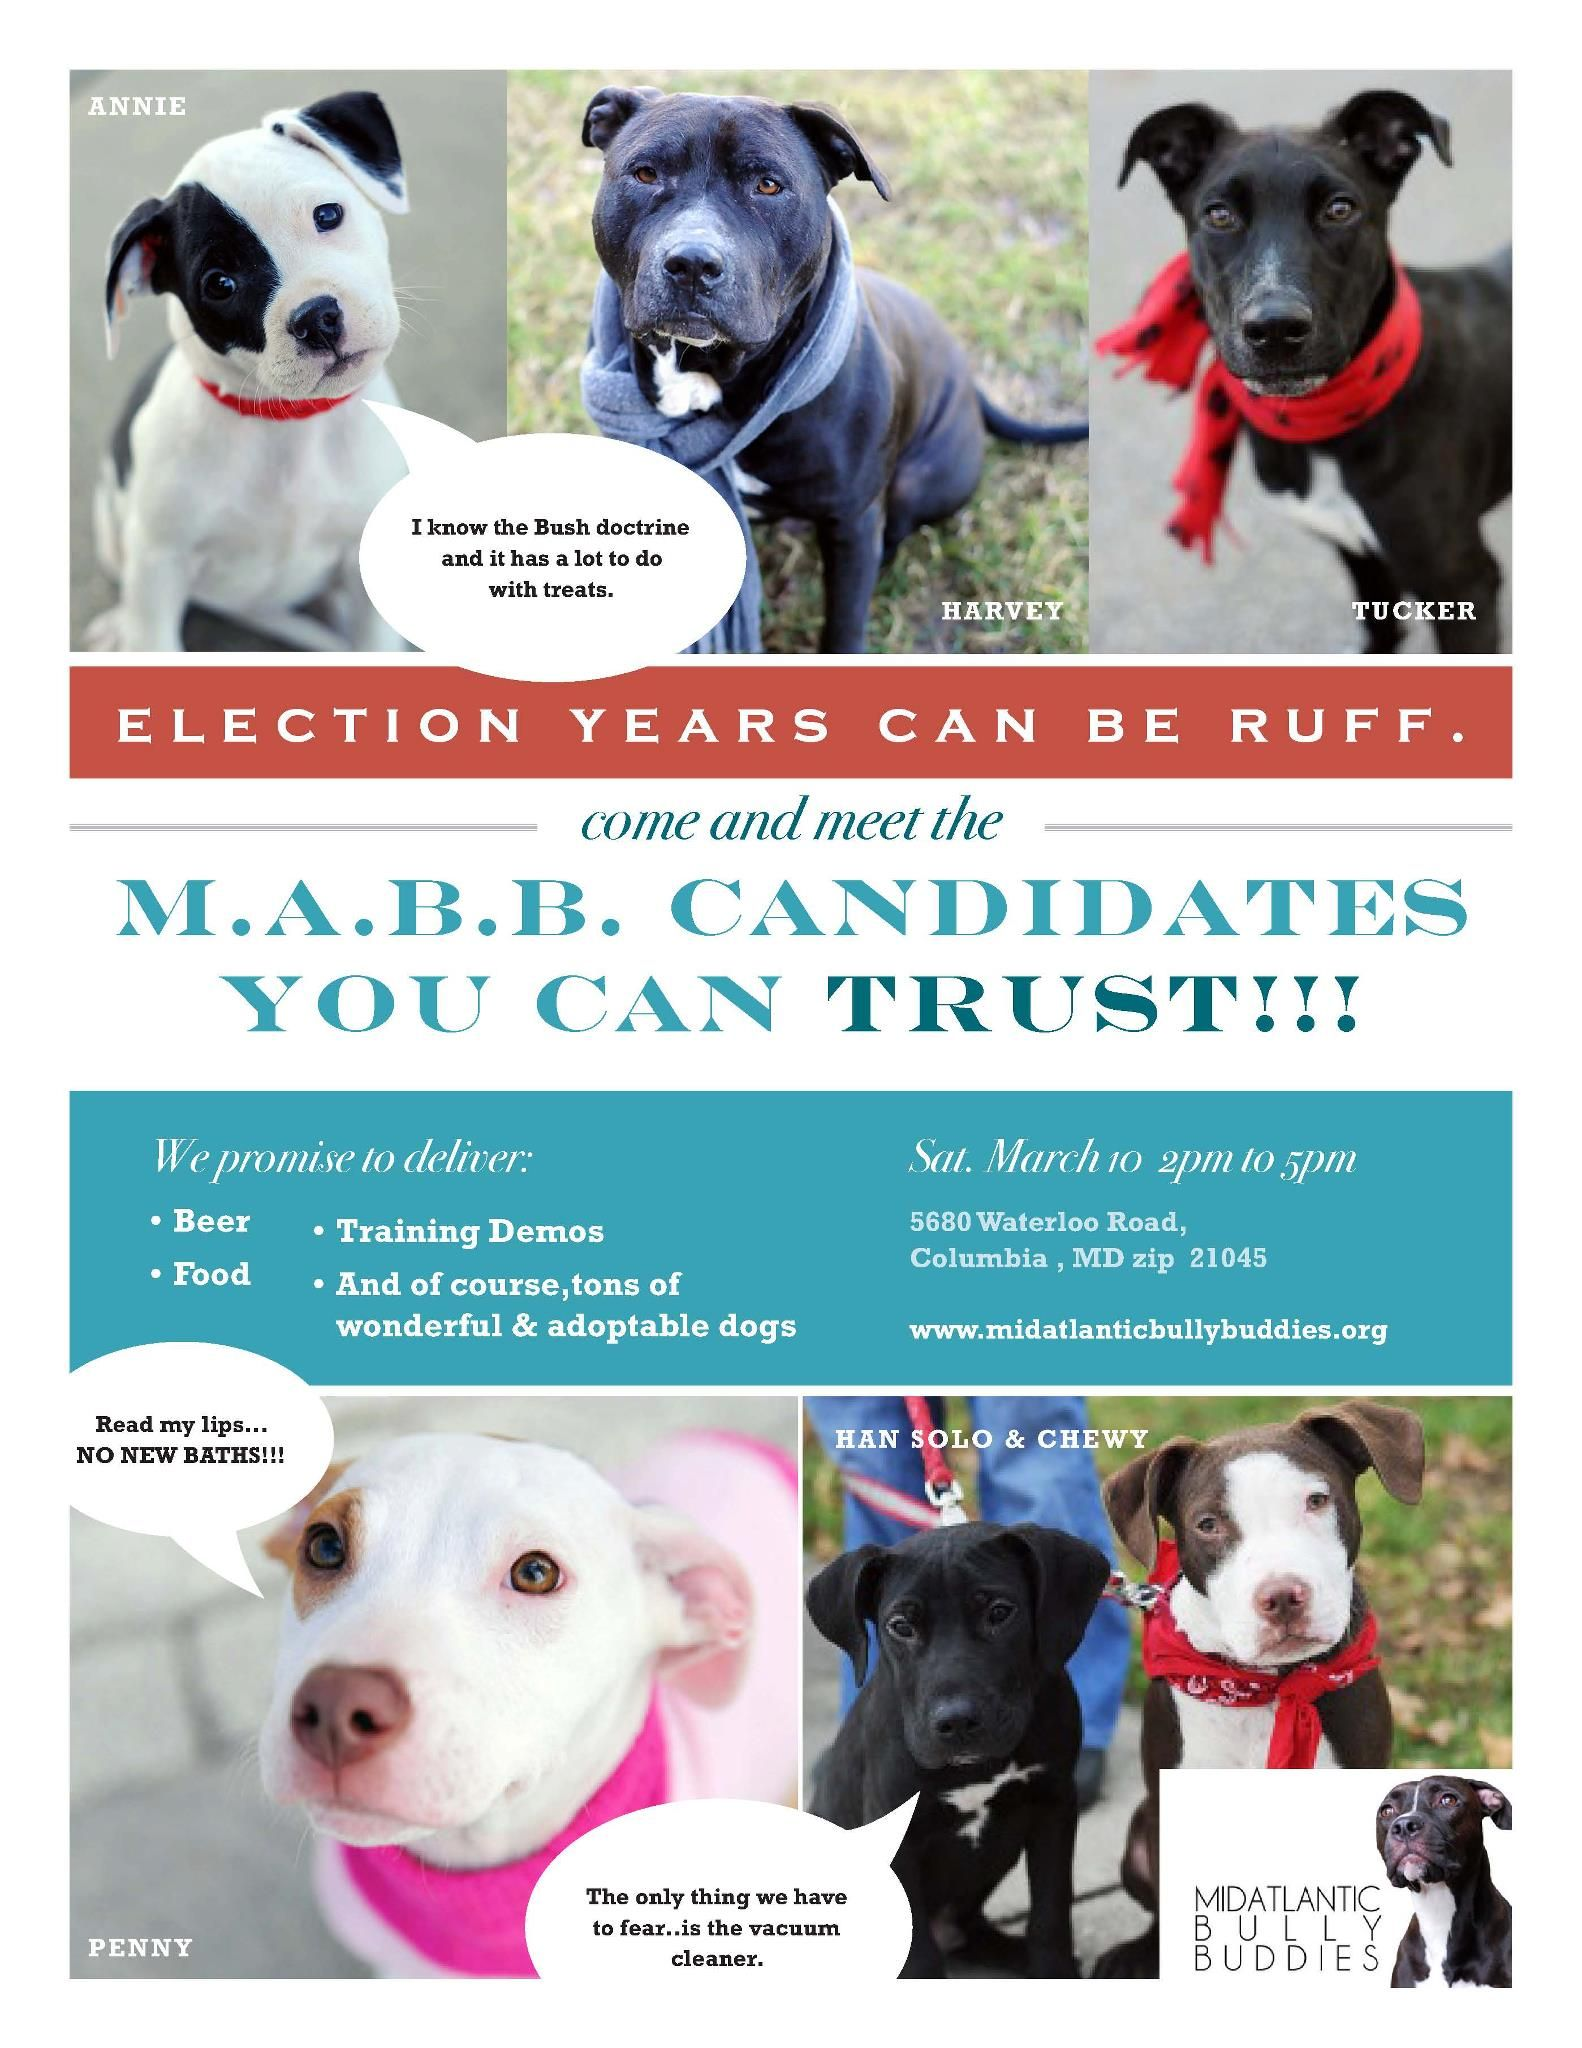 March 10th, 2012 from 2pm5pm huge adoption event in